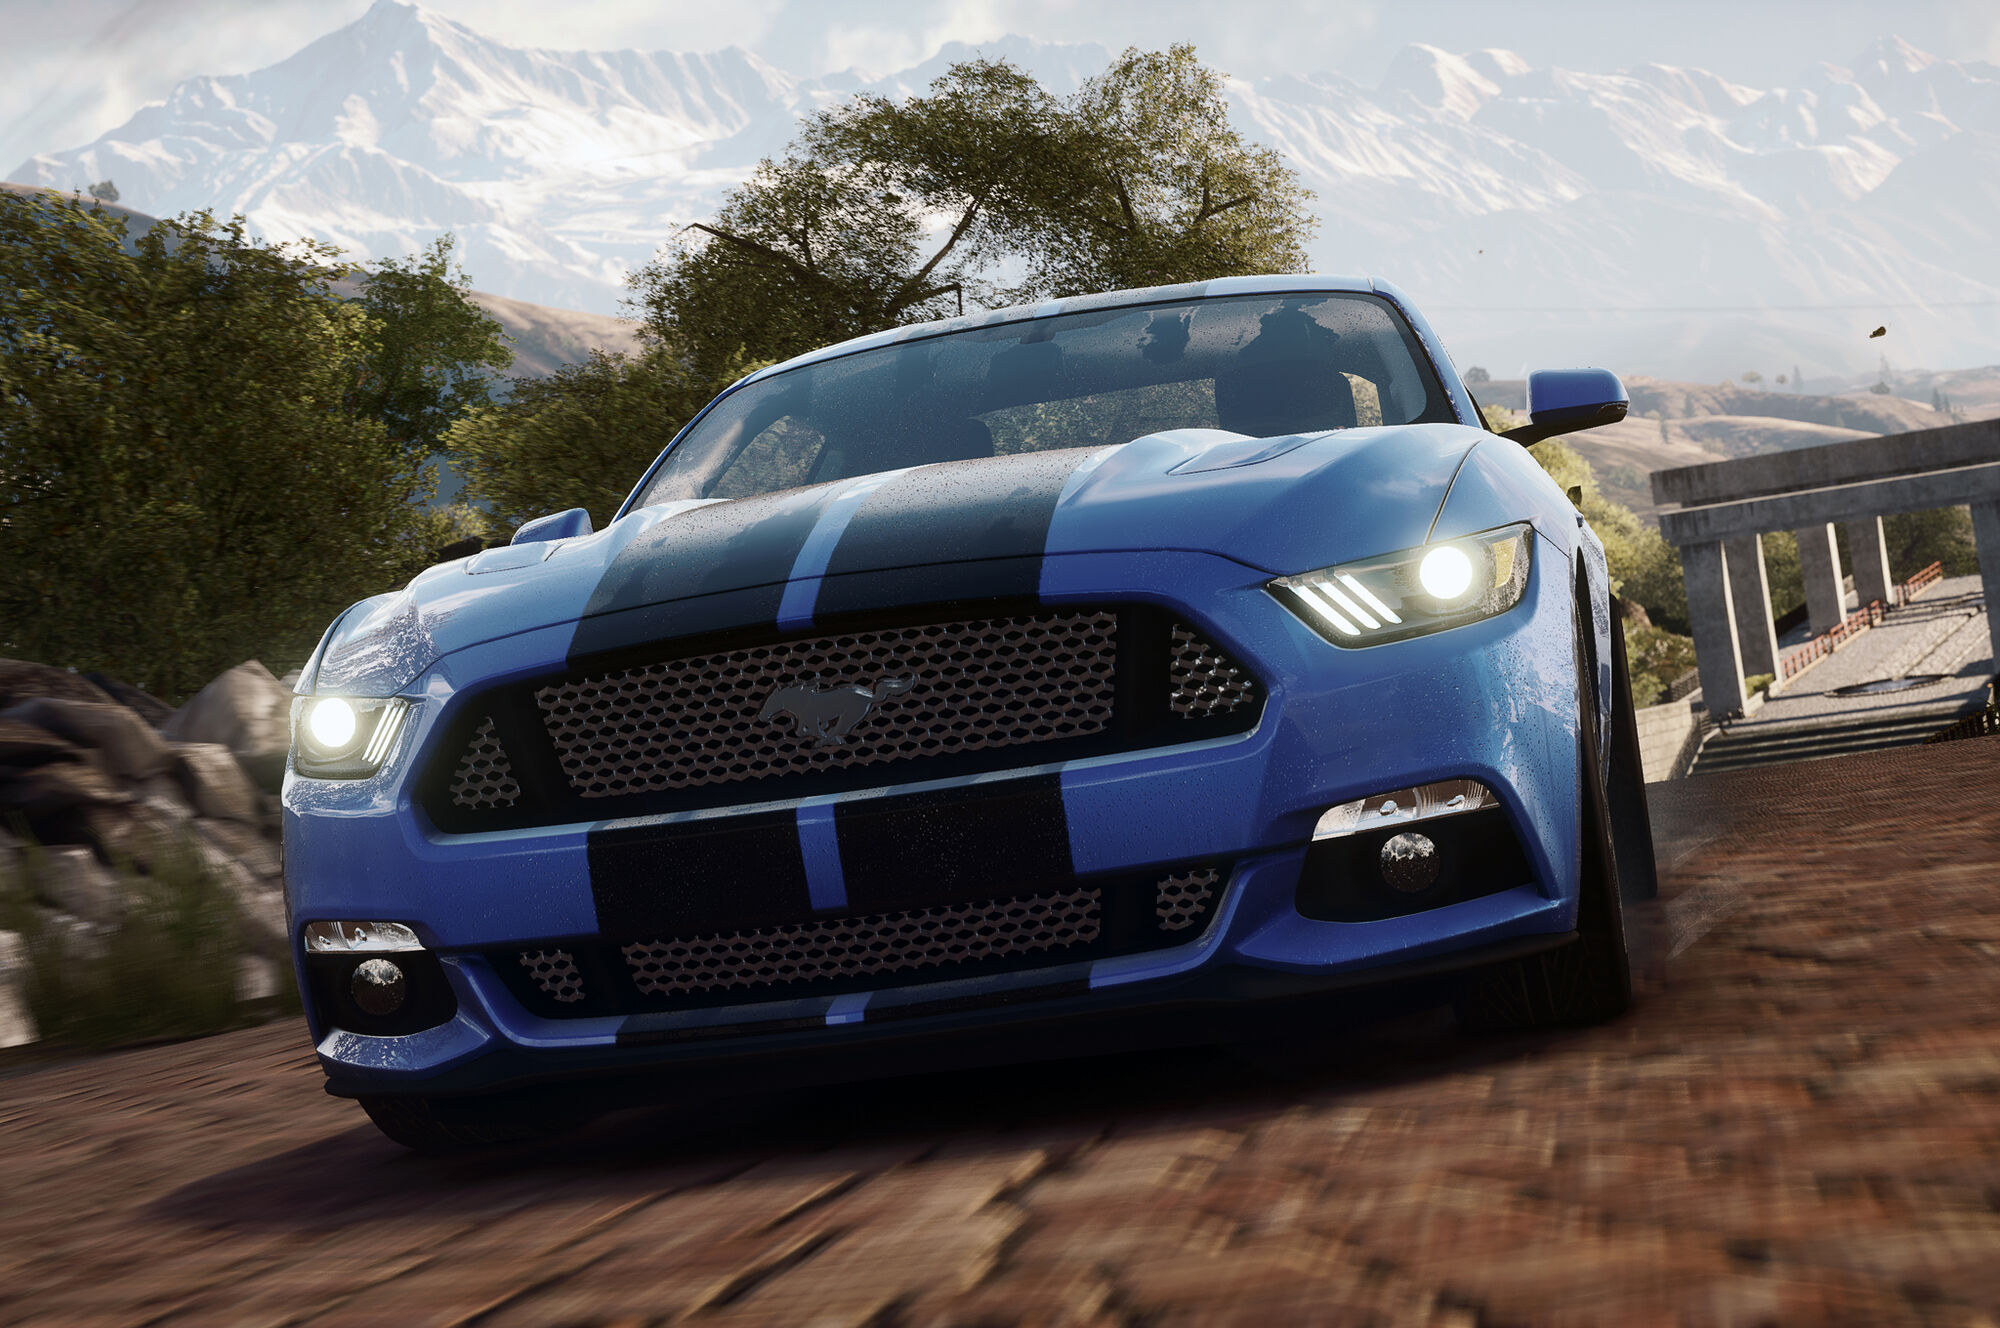 Ford mustang gt 2015 need for speed wiki fandom powered by wikia